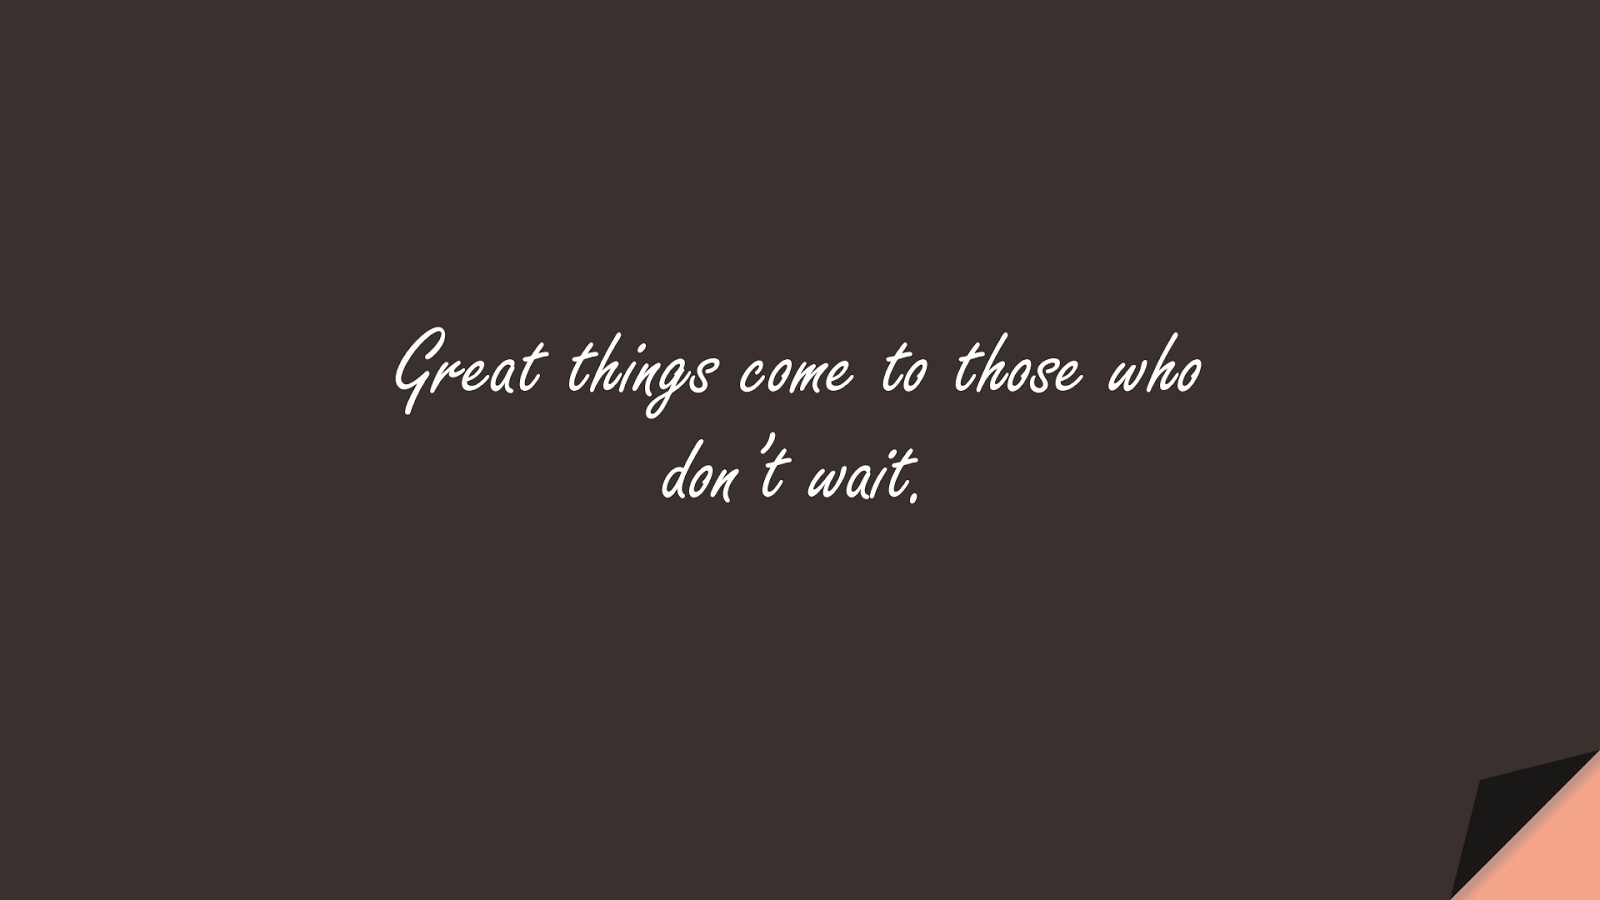 Great things come to those who don't wait.FALSE